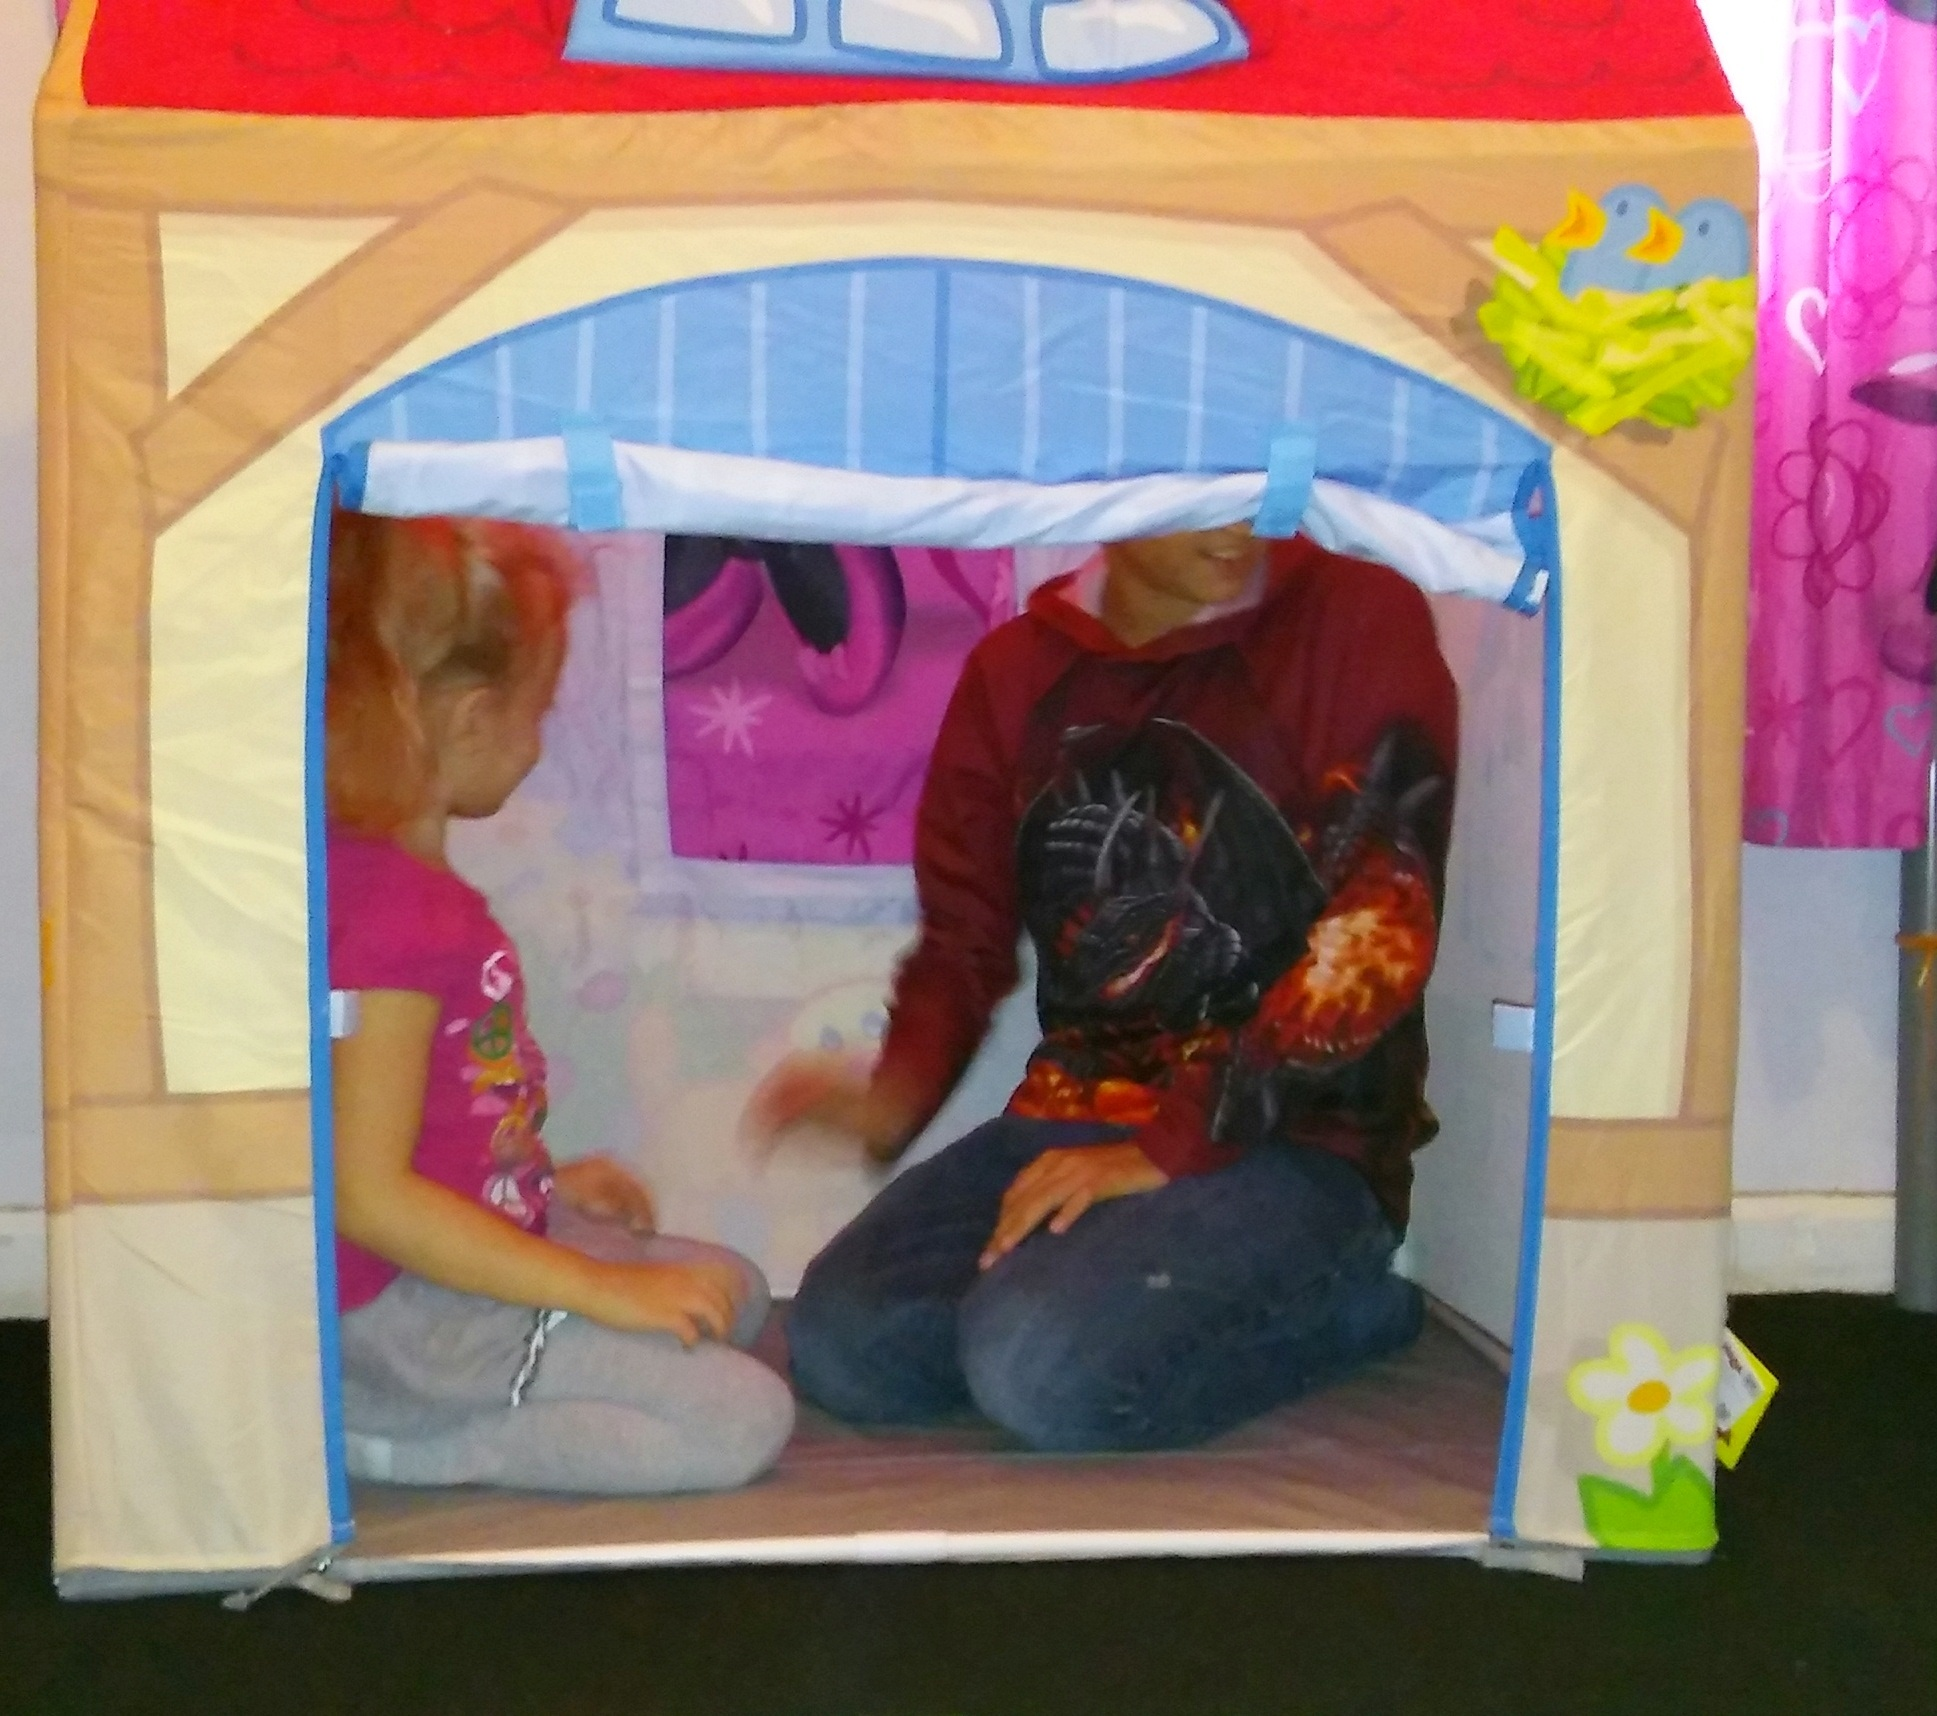 The size of the tent is also pleasantly surprising. My middle child plays with my youngest a lot and there was plenty of room for both of them to play in ... & HABA Farm Play Tent Review | Stephanyu0027s Sweet Life